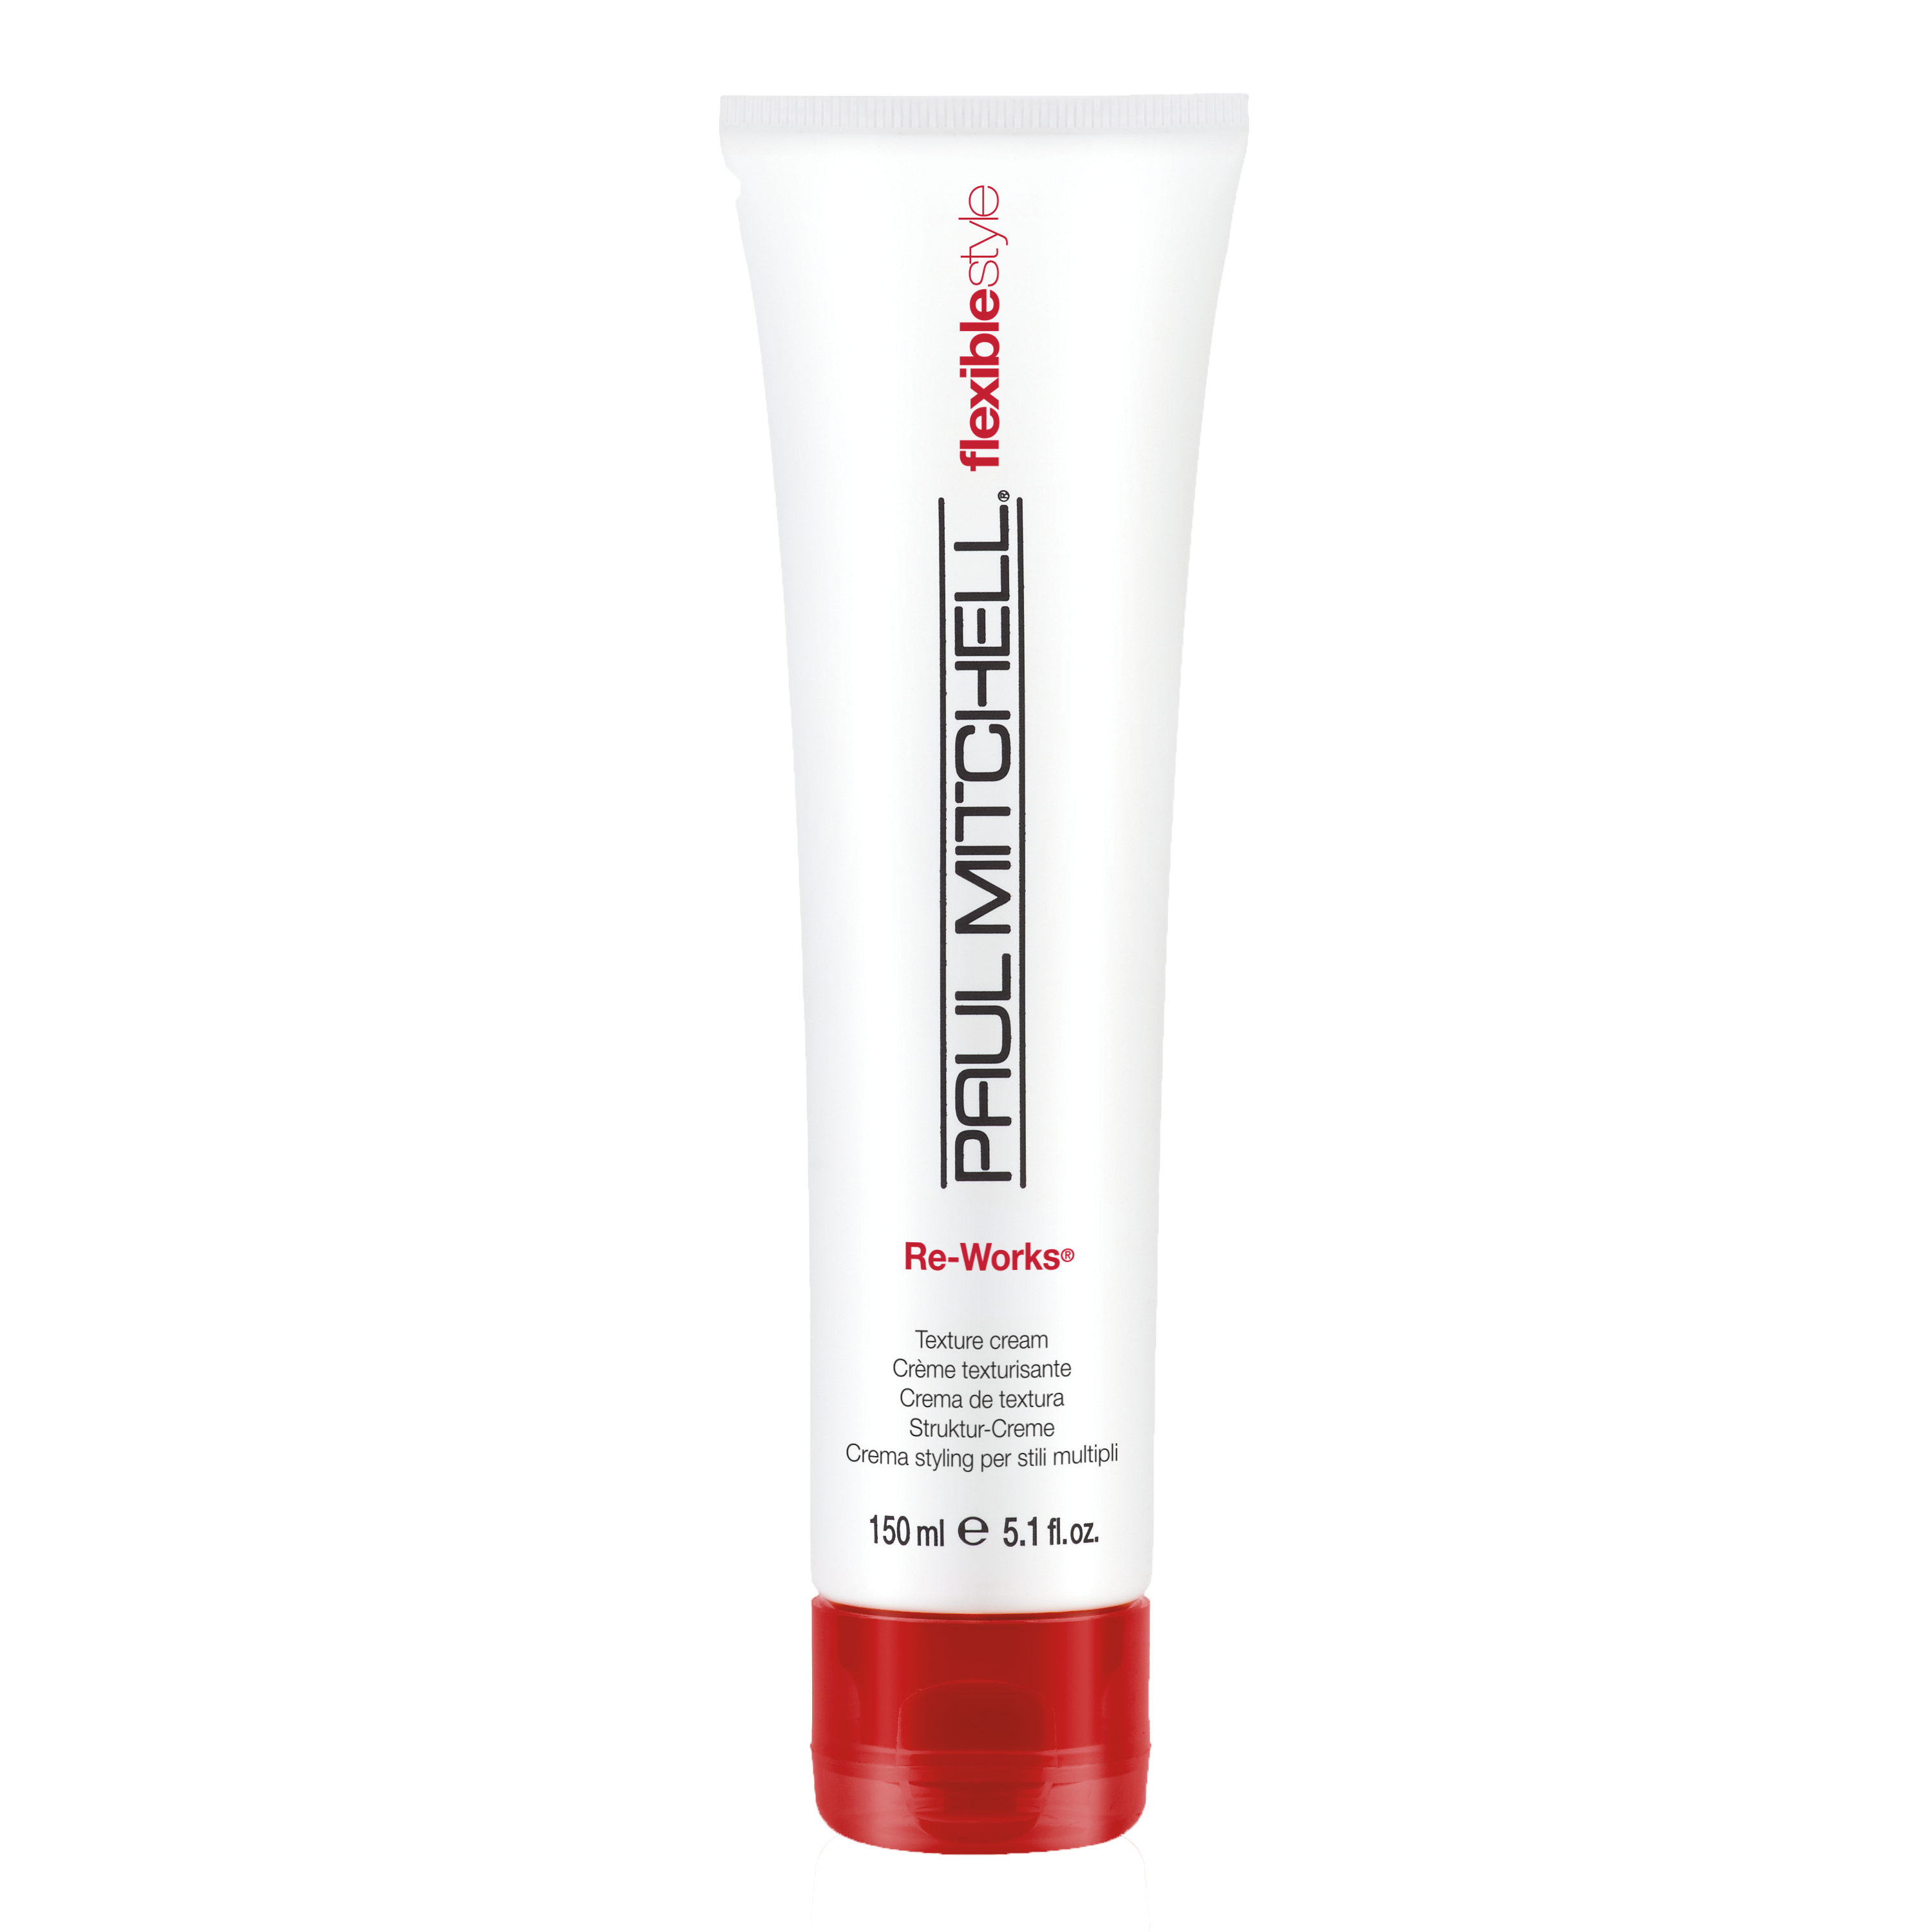 Paul Mitchell Re-Works Texture Cream